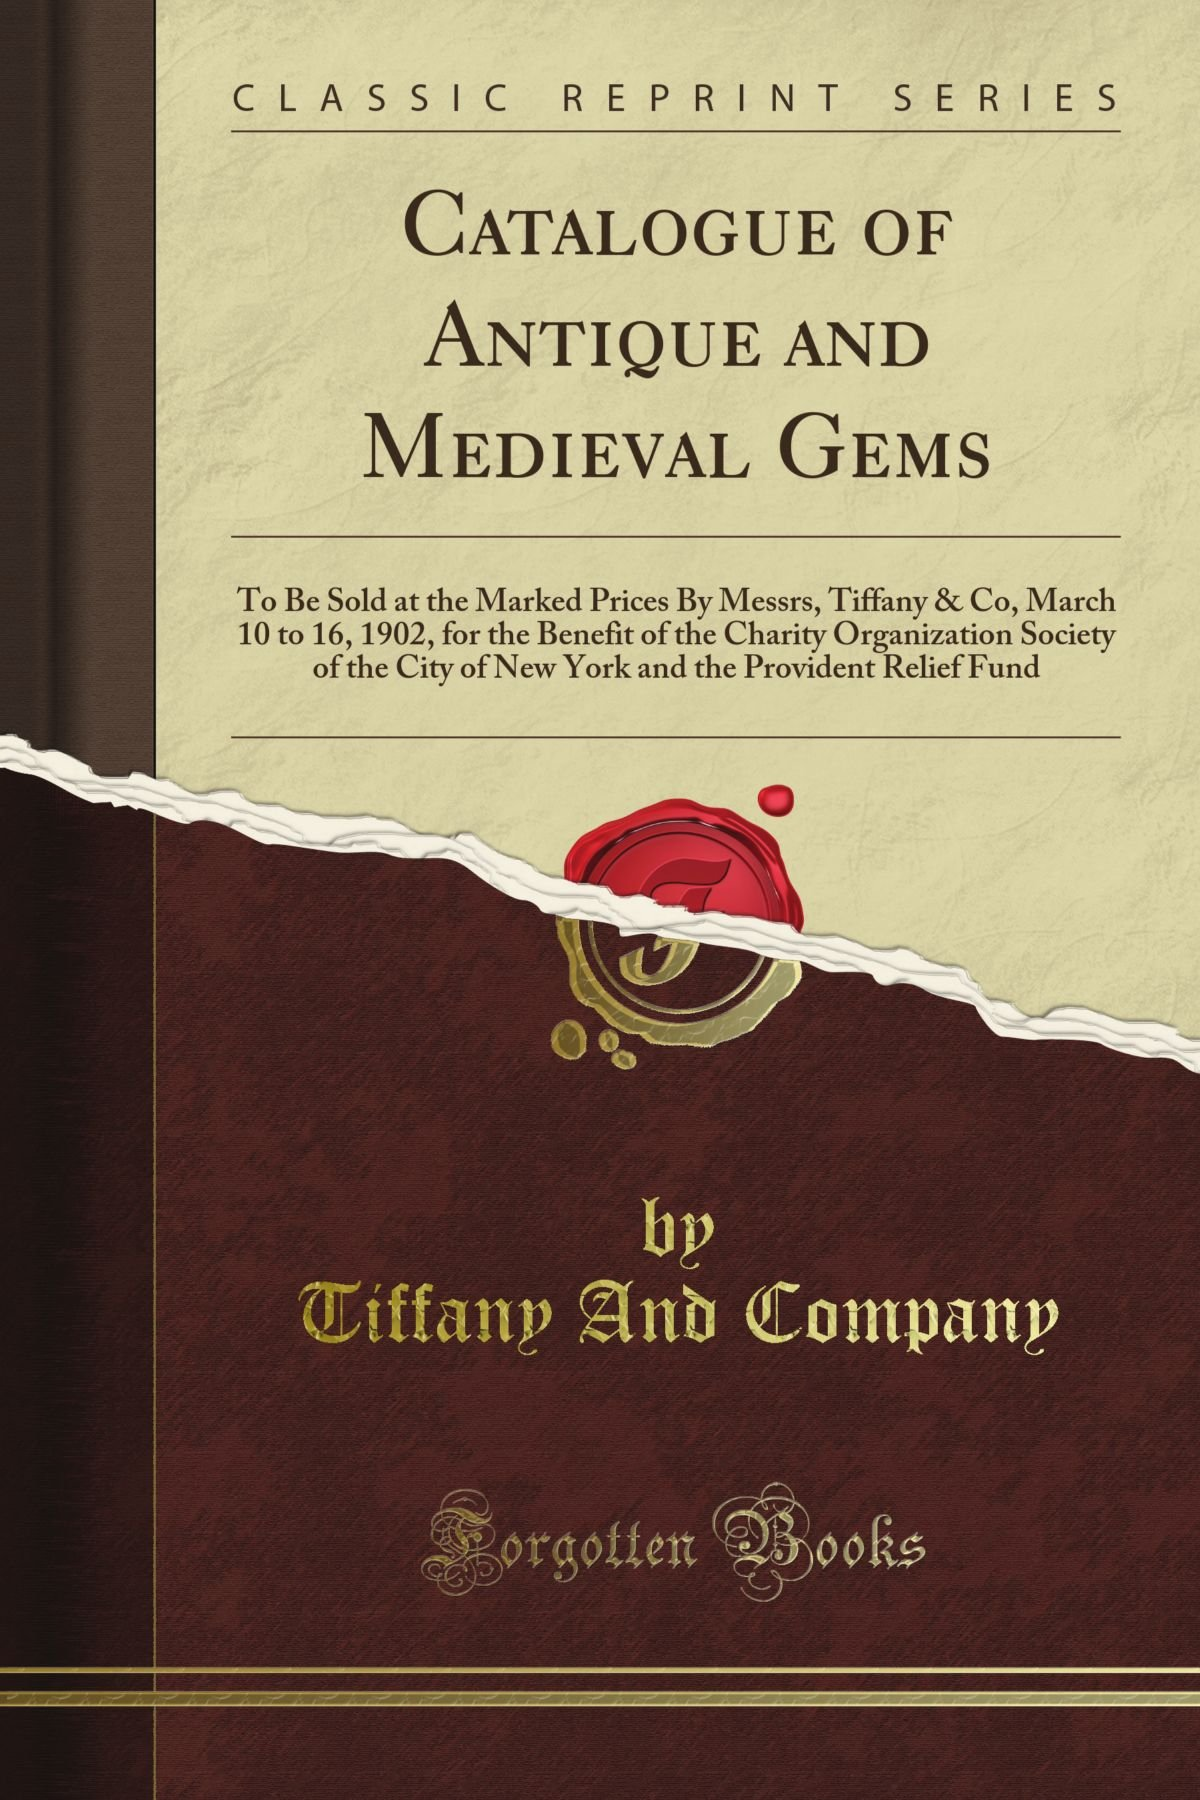 Catalogue of Antique and Medieval Gems: To Be Sold at the